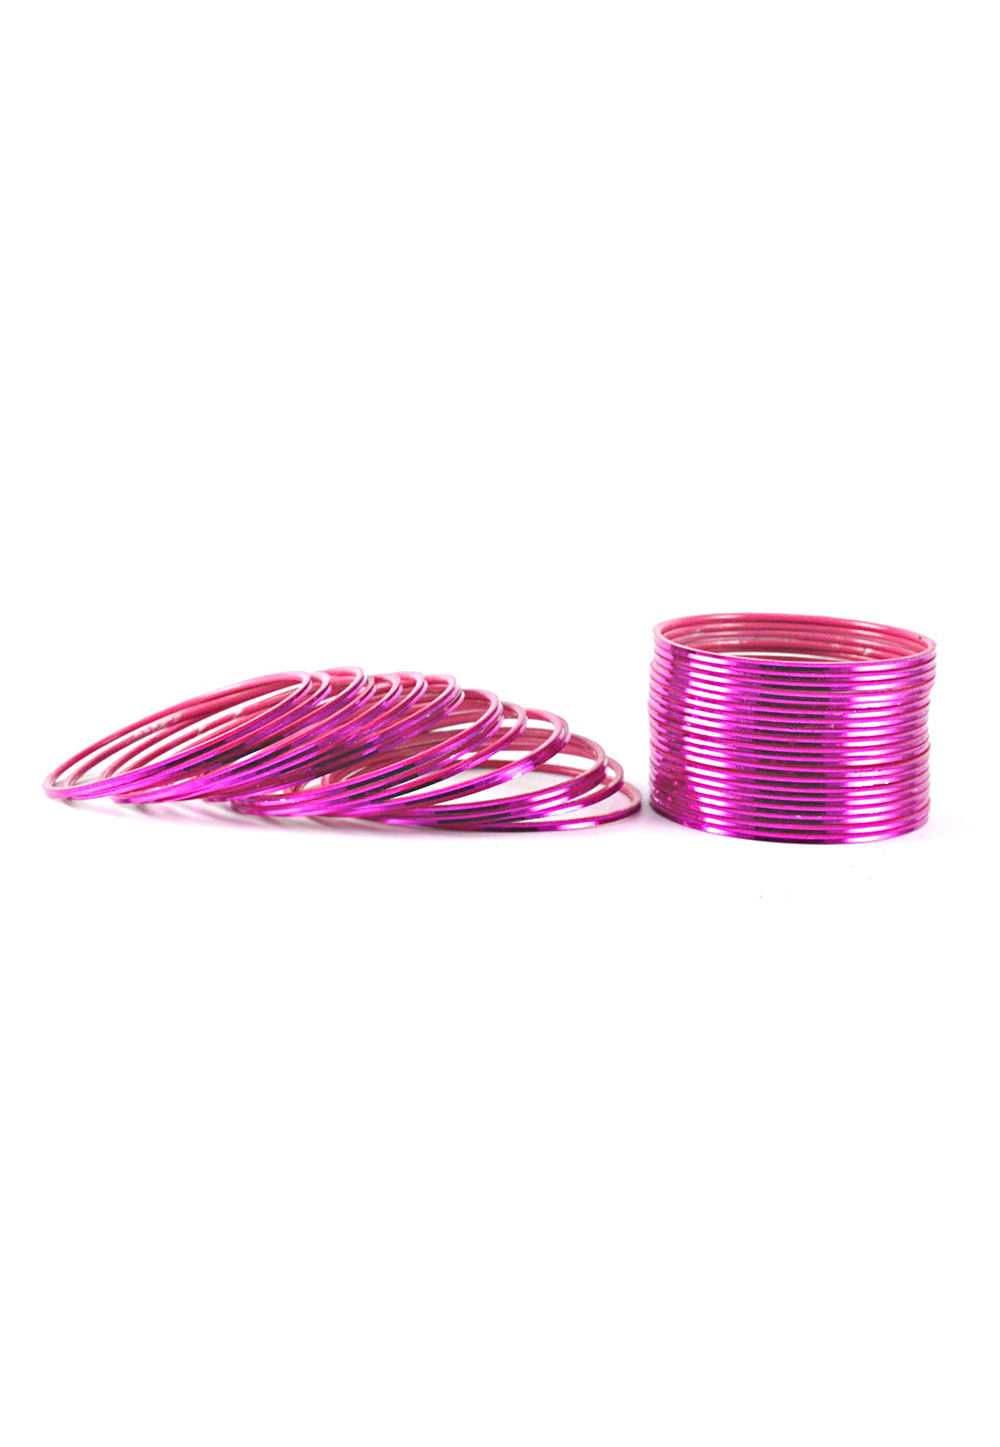 Metallic Bangles in Fuchsia